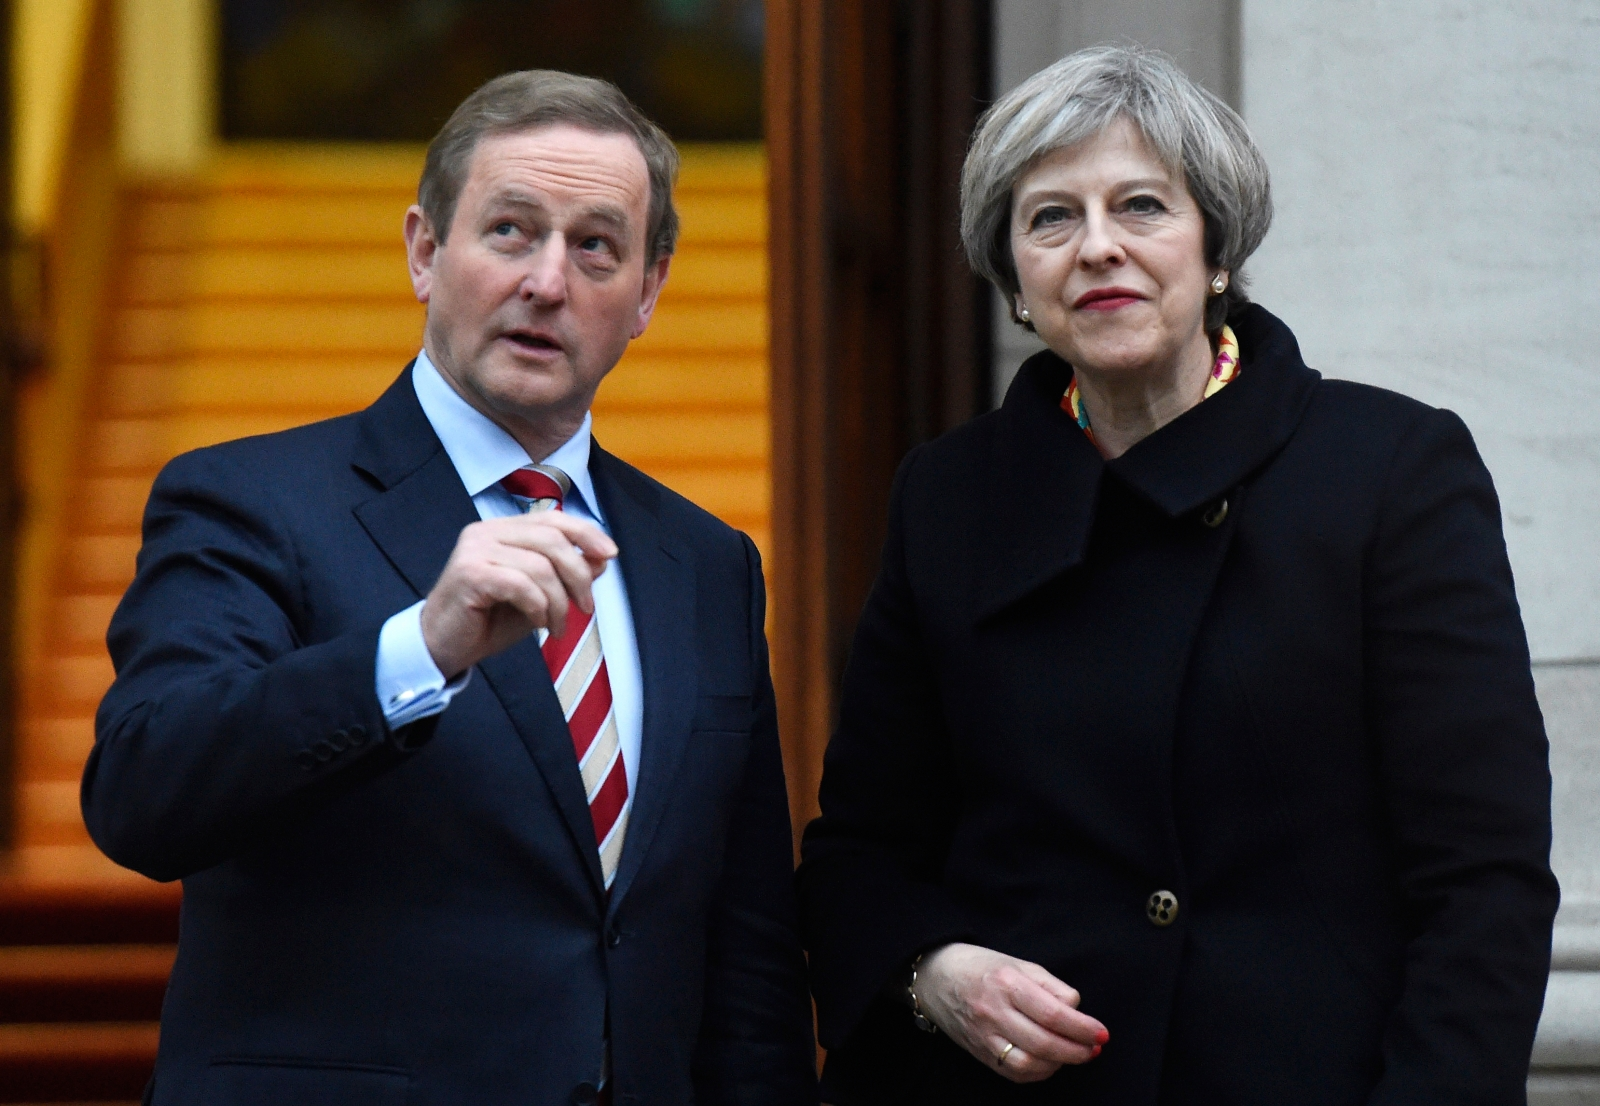 Ireland's Taoiseach Enda Kenny greets Britain's Prime Minister Theresa May to Government Buildings in Dublin